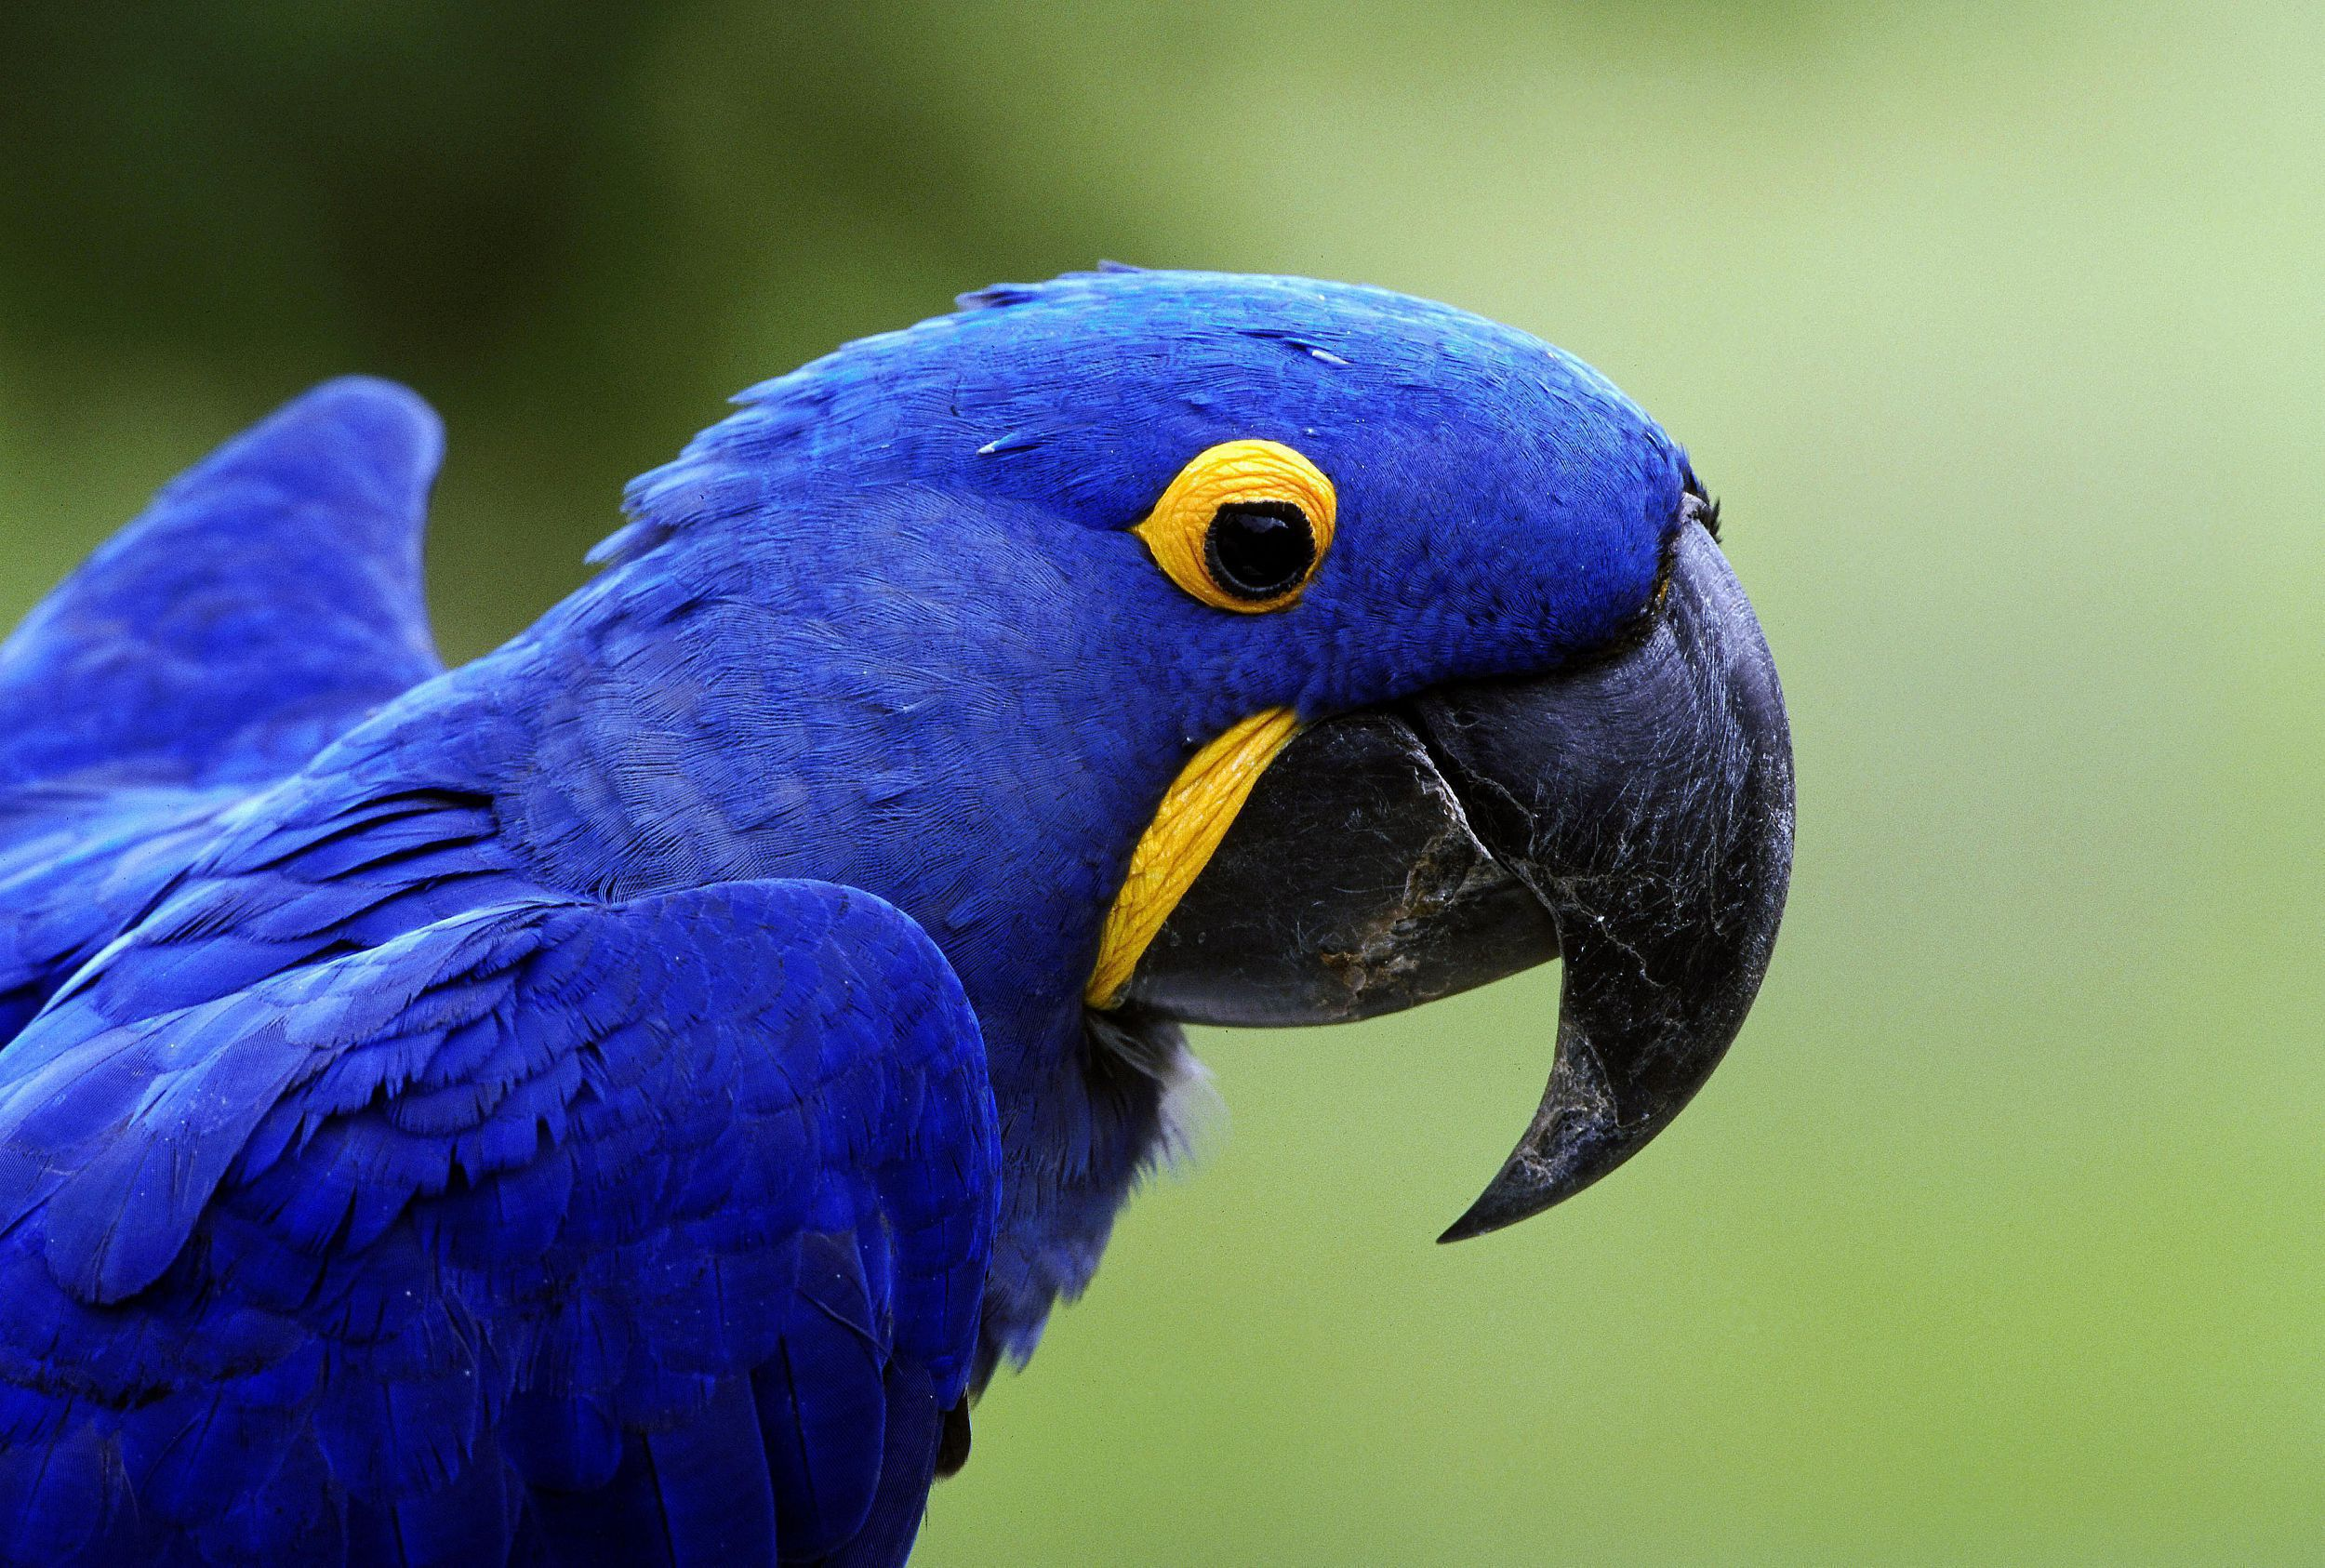 Blue Parrot HD Wallpaper